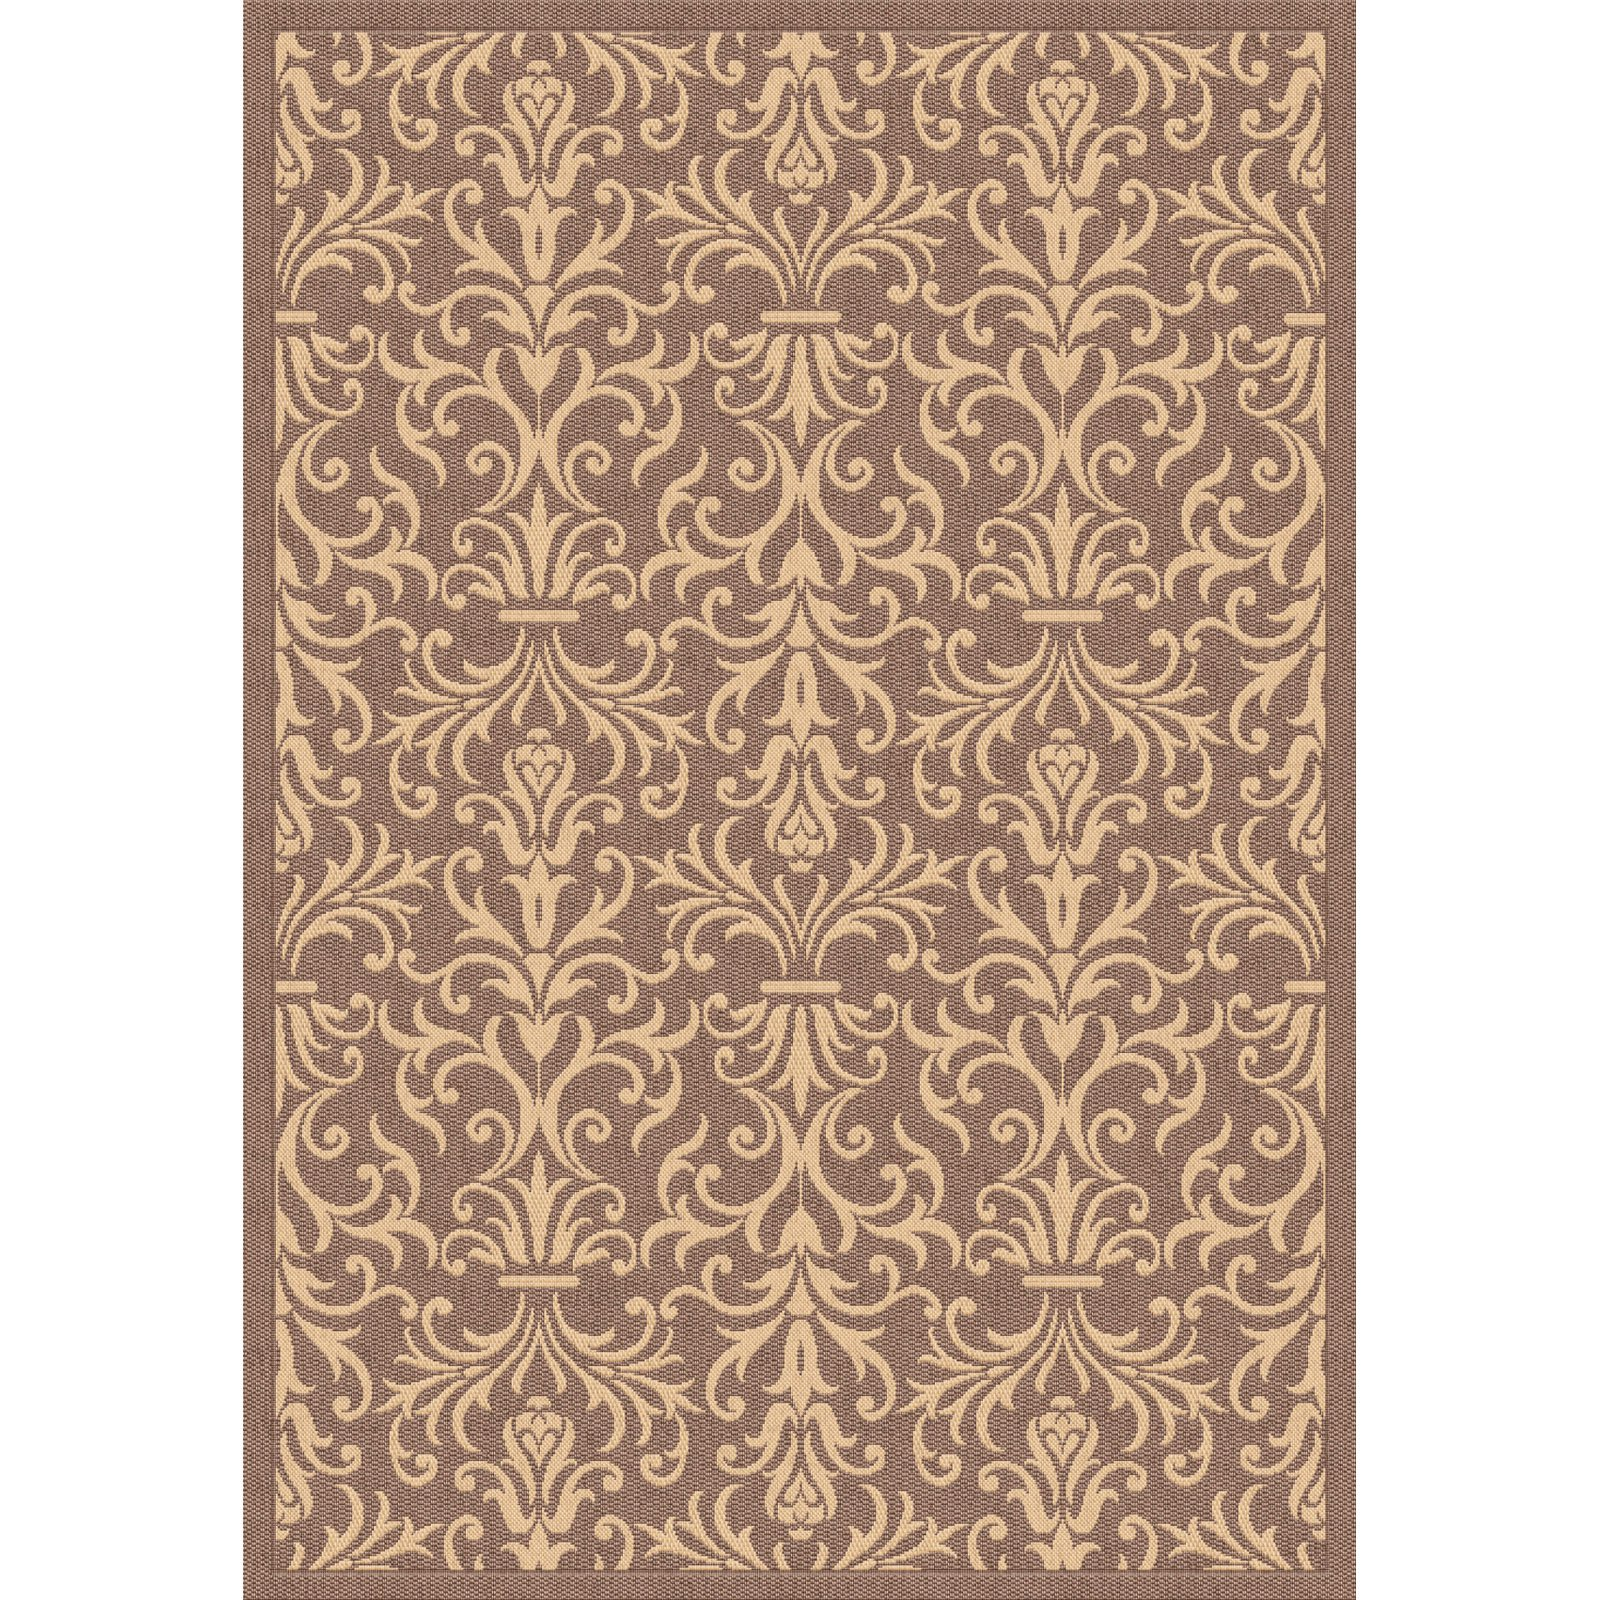 Dynamic Rugs Piazza French Indoor/Outdoor Area Rug